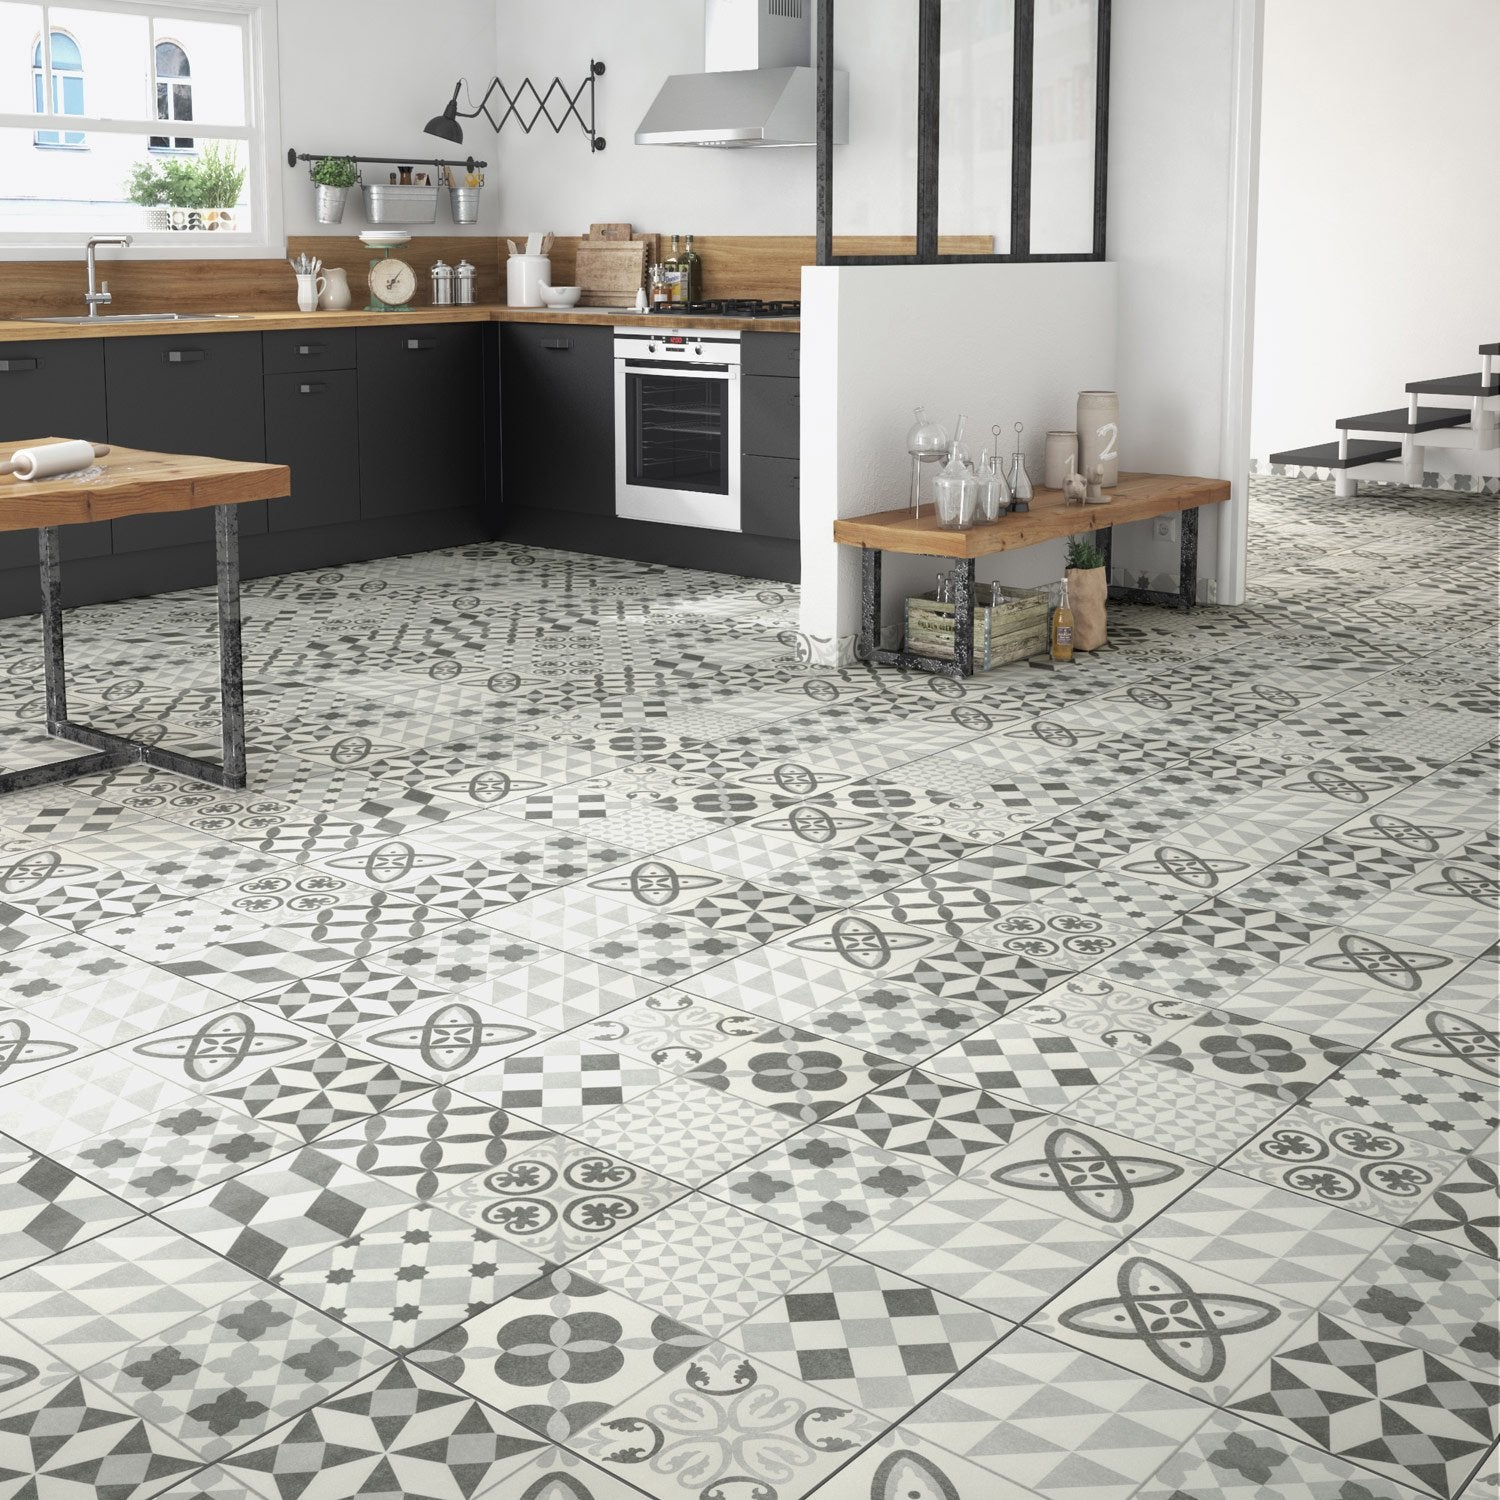 Carrelage sol gris aspect carreau de ciment ruban x cm leroy merlin - Carreau de ciment mural cuisine ...